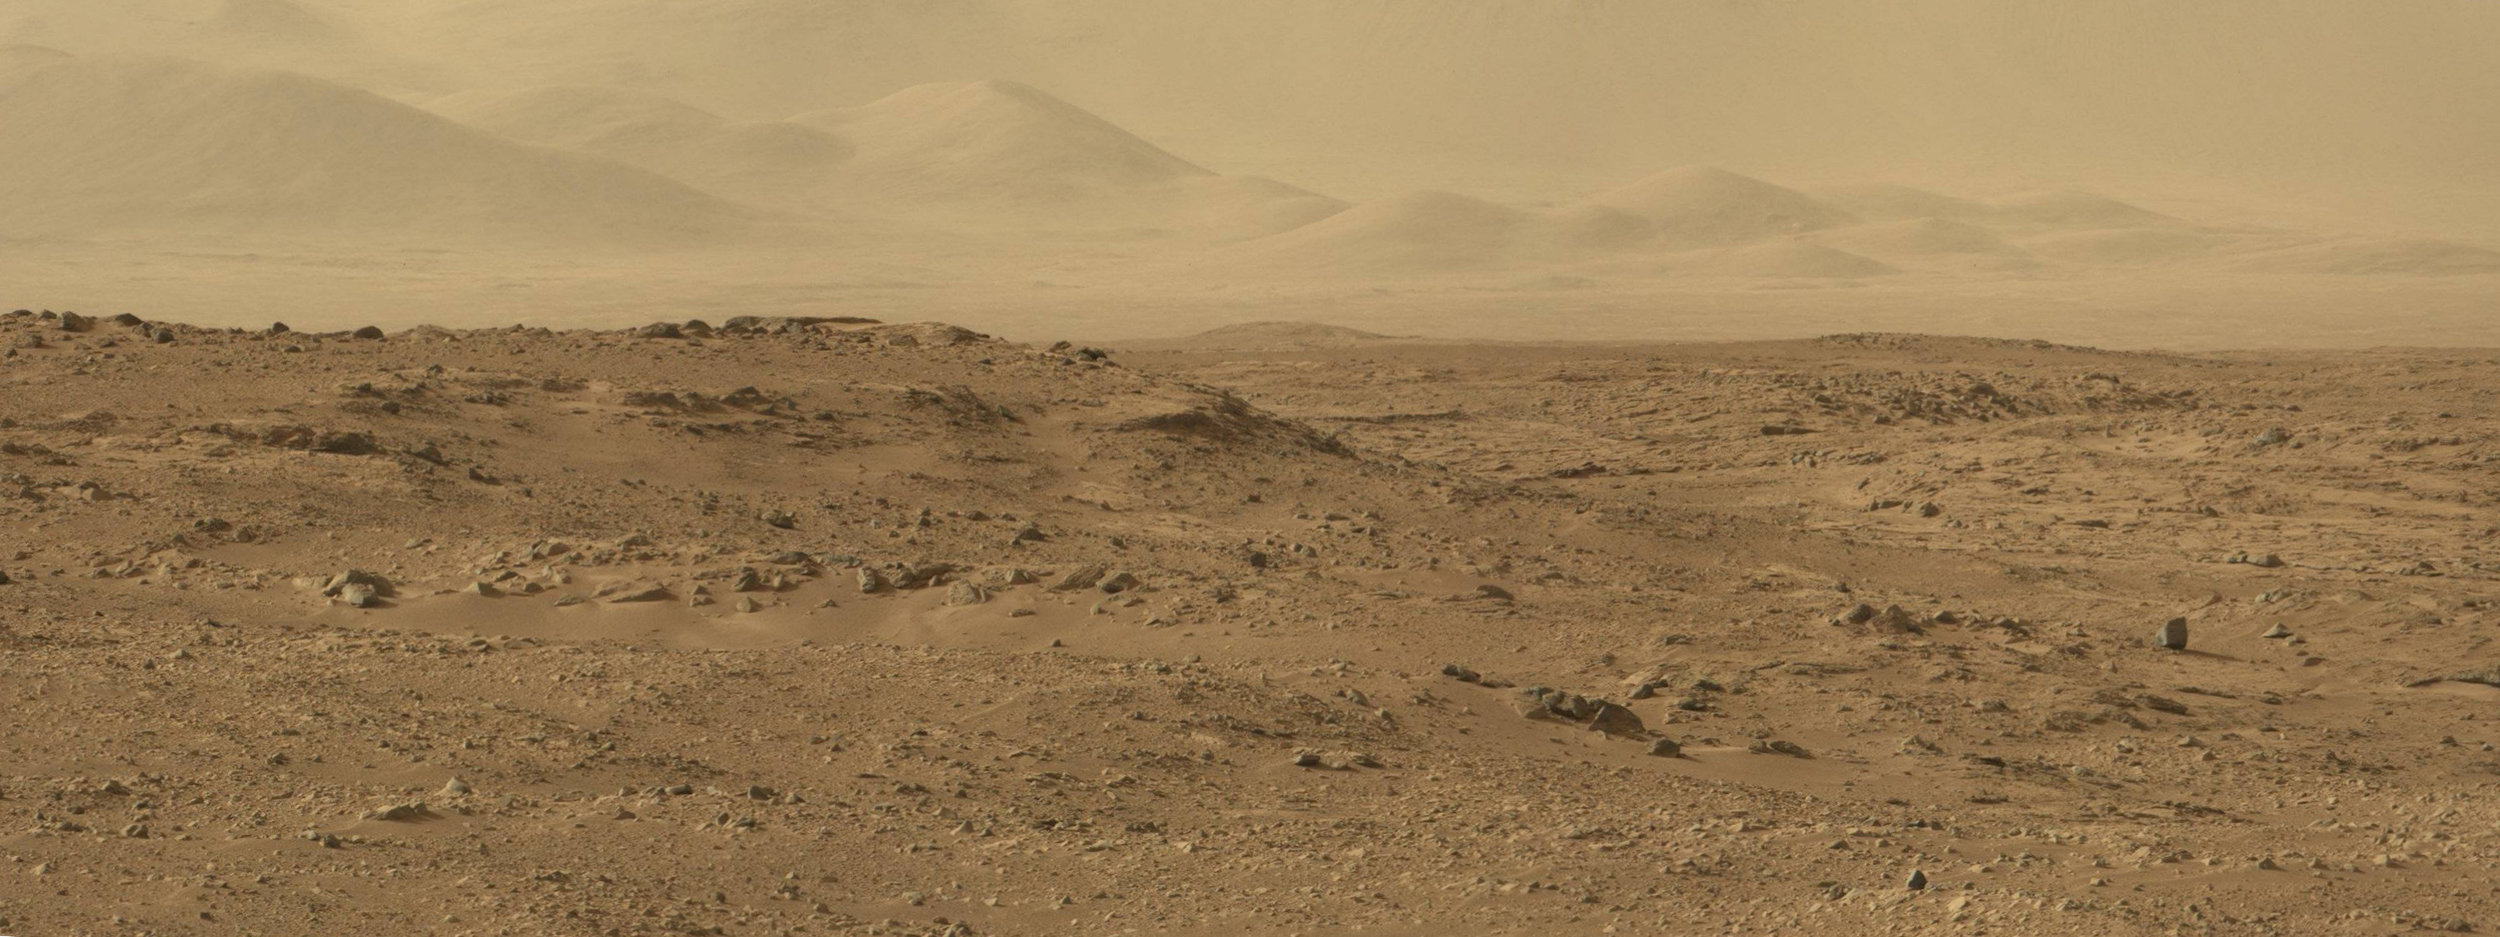 Mars Curiosity's View on Sol 50